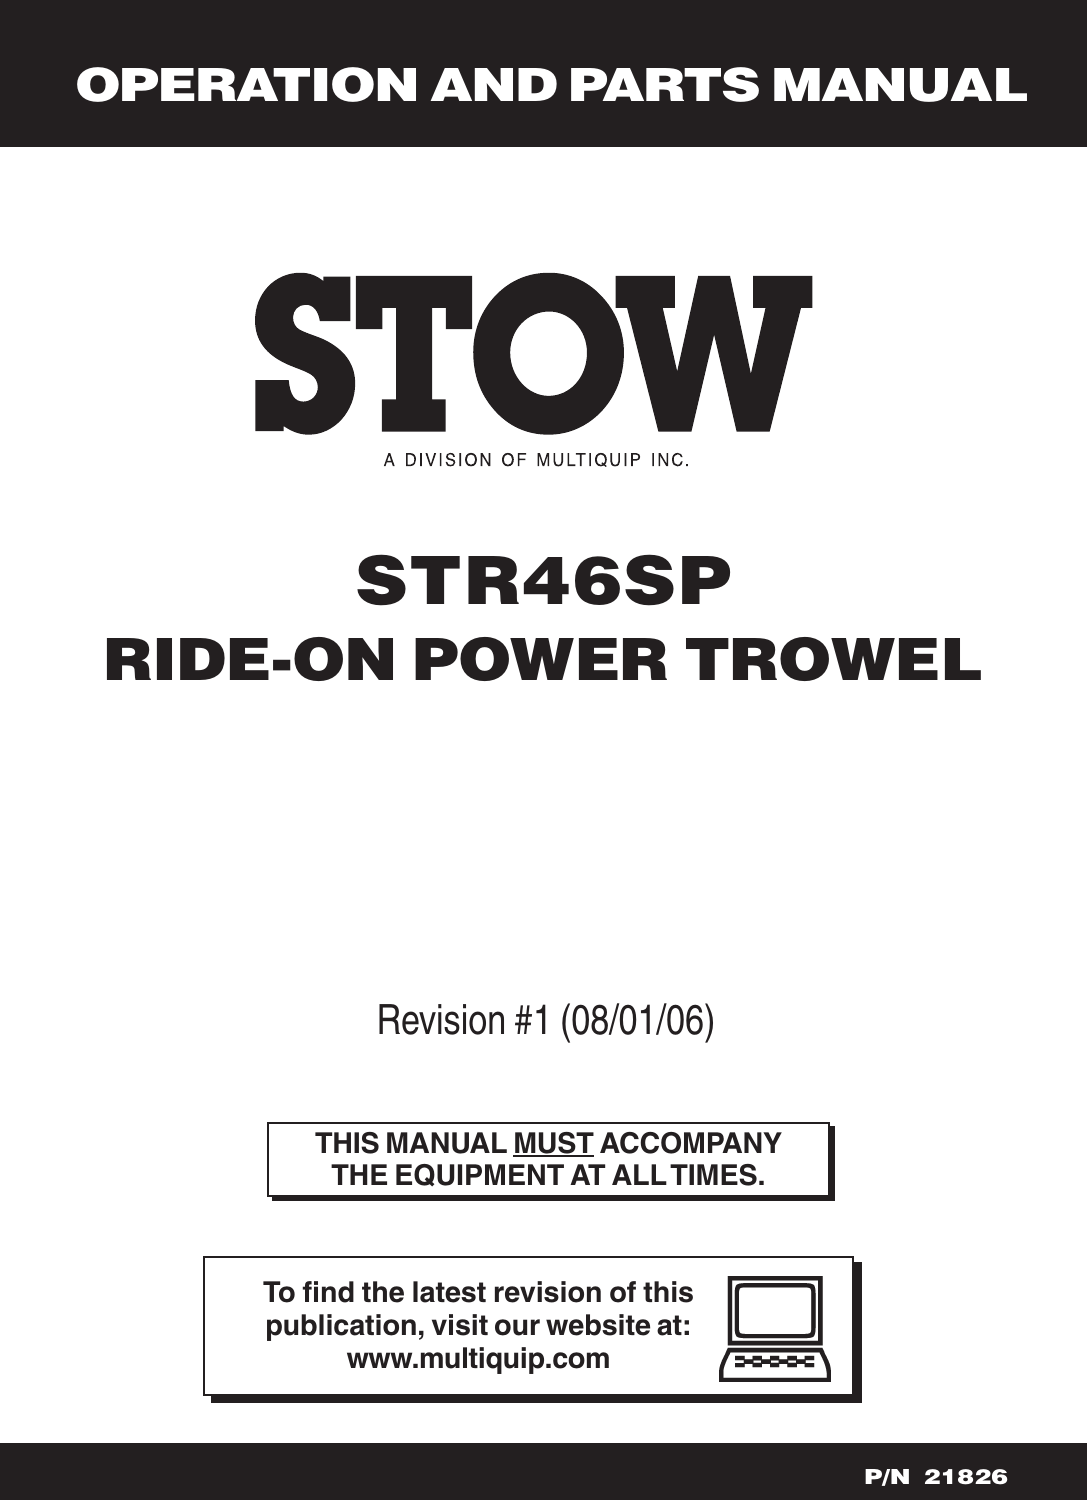 Stow Lawn Mower Str46Sp Users Manual Rev 0.pmd